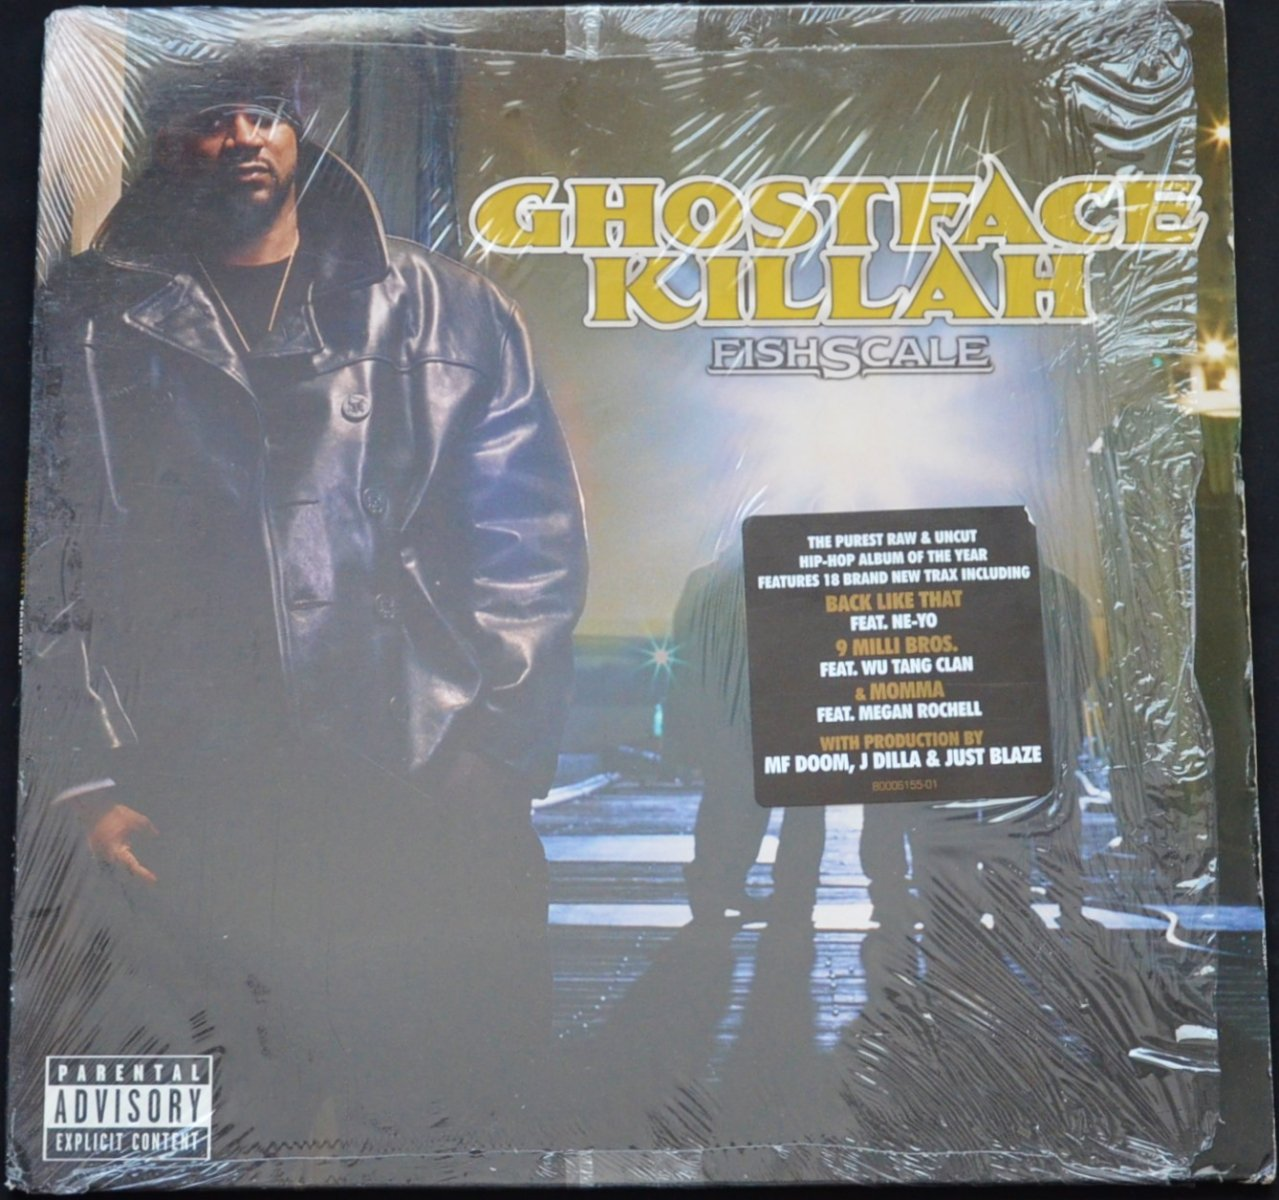 GHOSTFACE KILLAH ‎/ FISHSCALE (2LP)